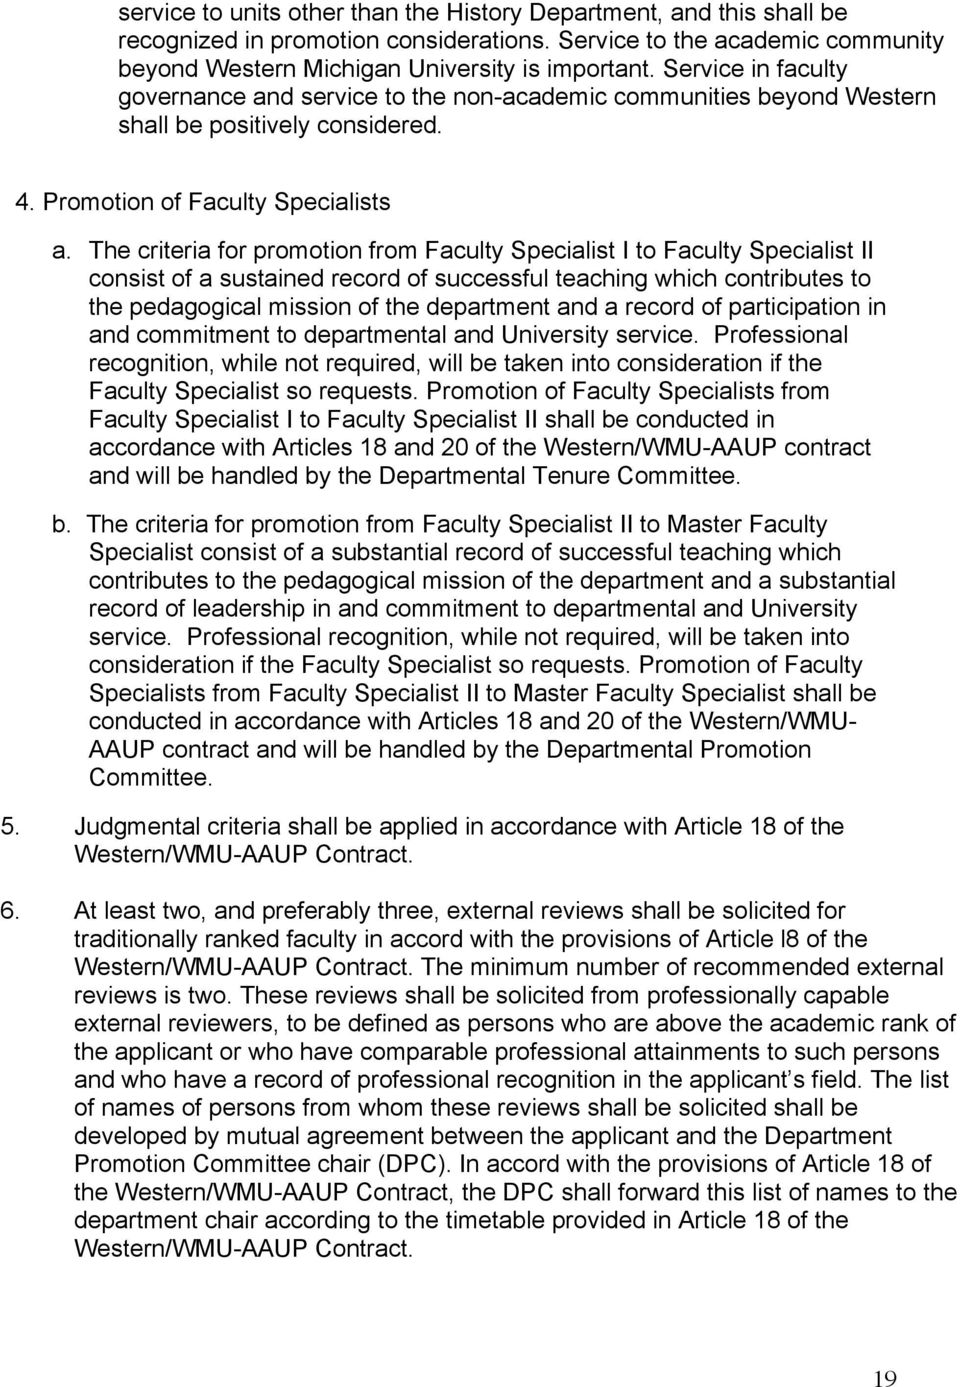 The criteria for promotion from Faculty Specialist I to Faculty Specialist II consist of a sustained record of successful teaching which contributes to the pedagogical mission of the department and a